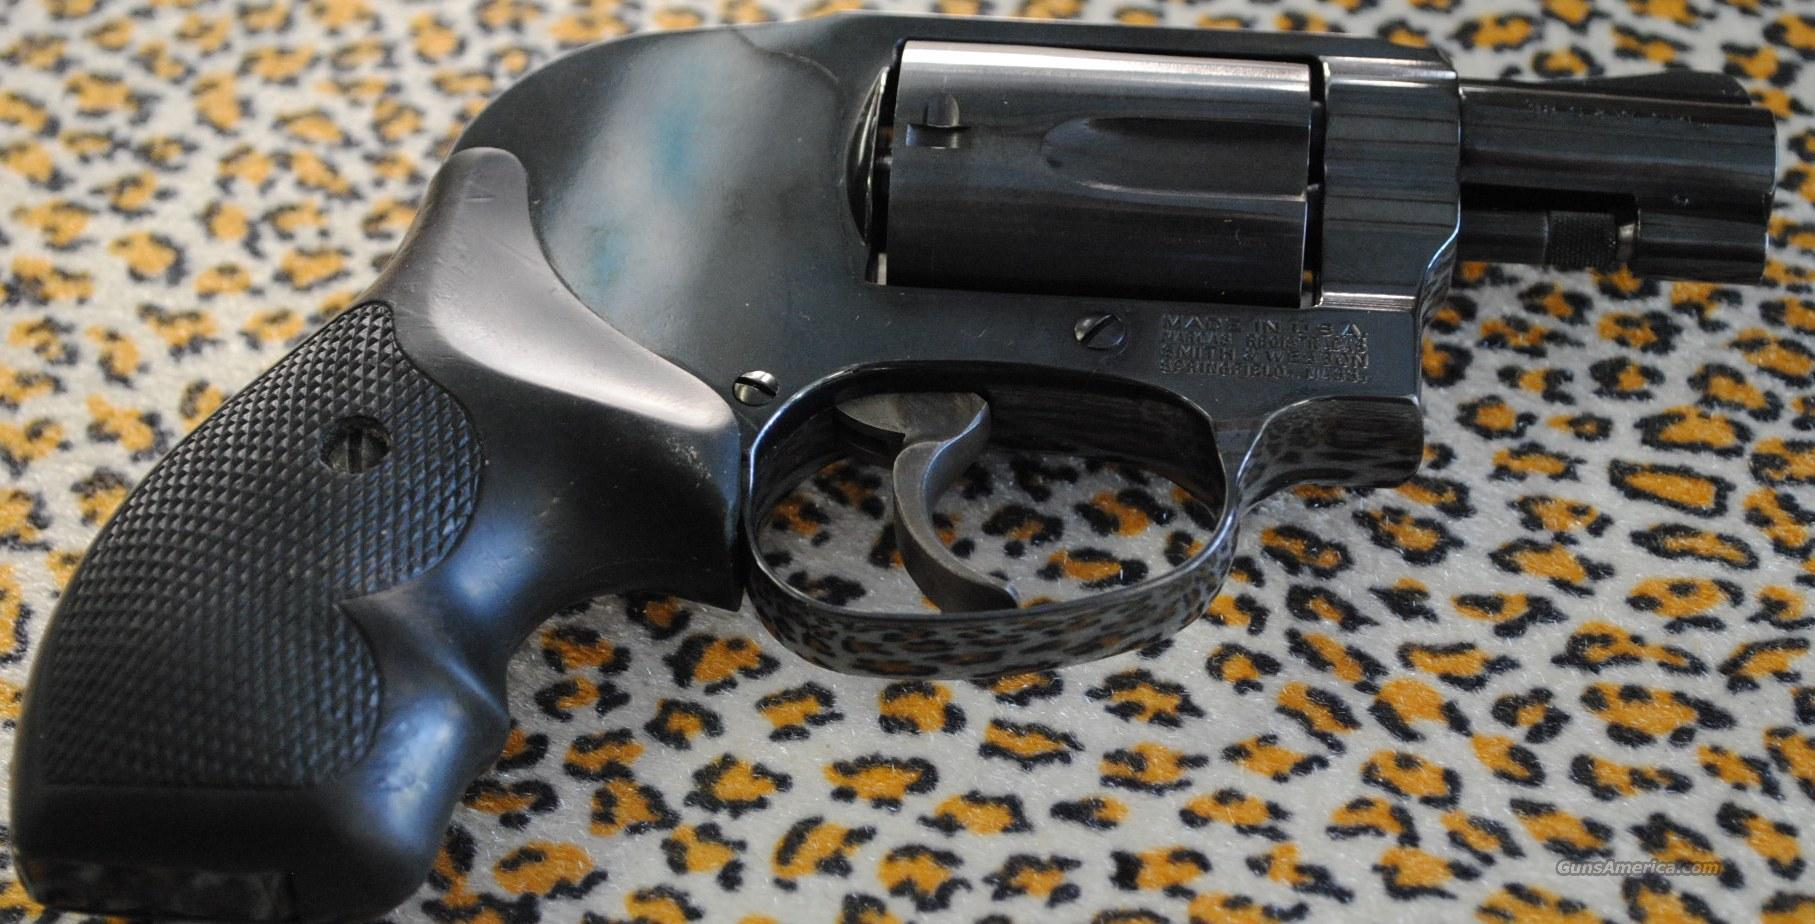 SMITH & WESSON 49-3 .38 SPECIAL  Guns > Pistols > Smith & Wesson Revolvers > Full Frame Revolver